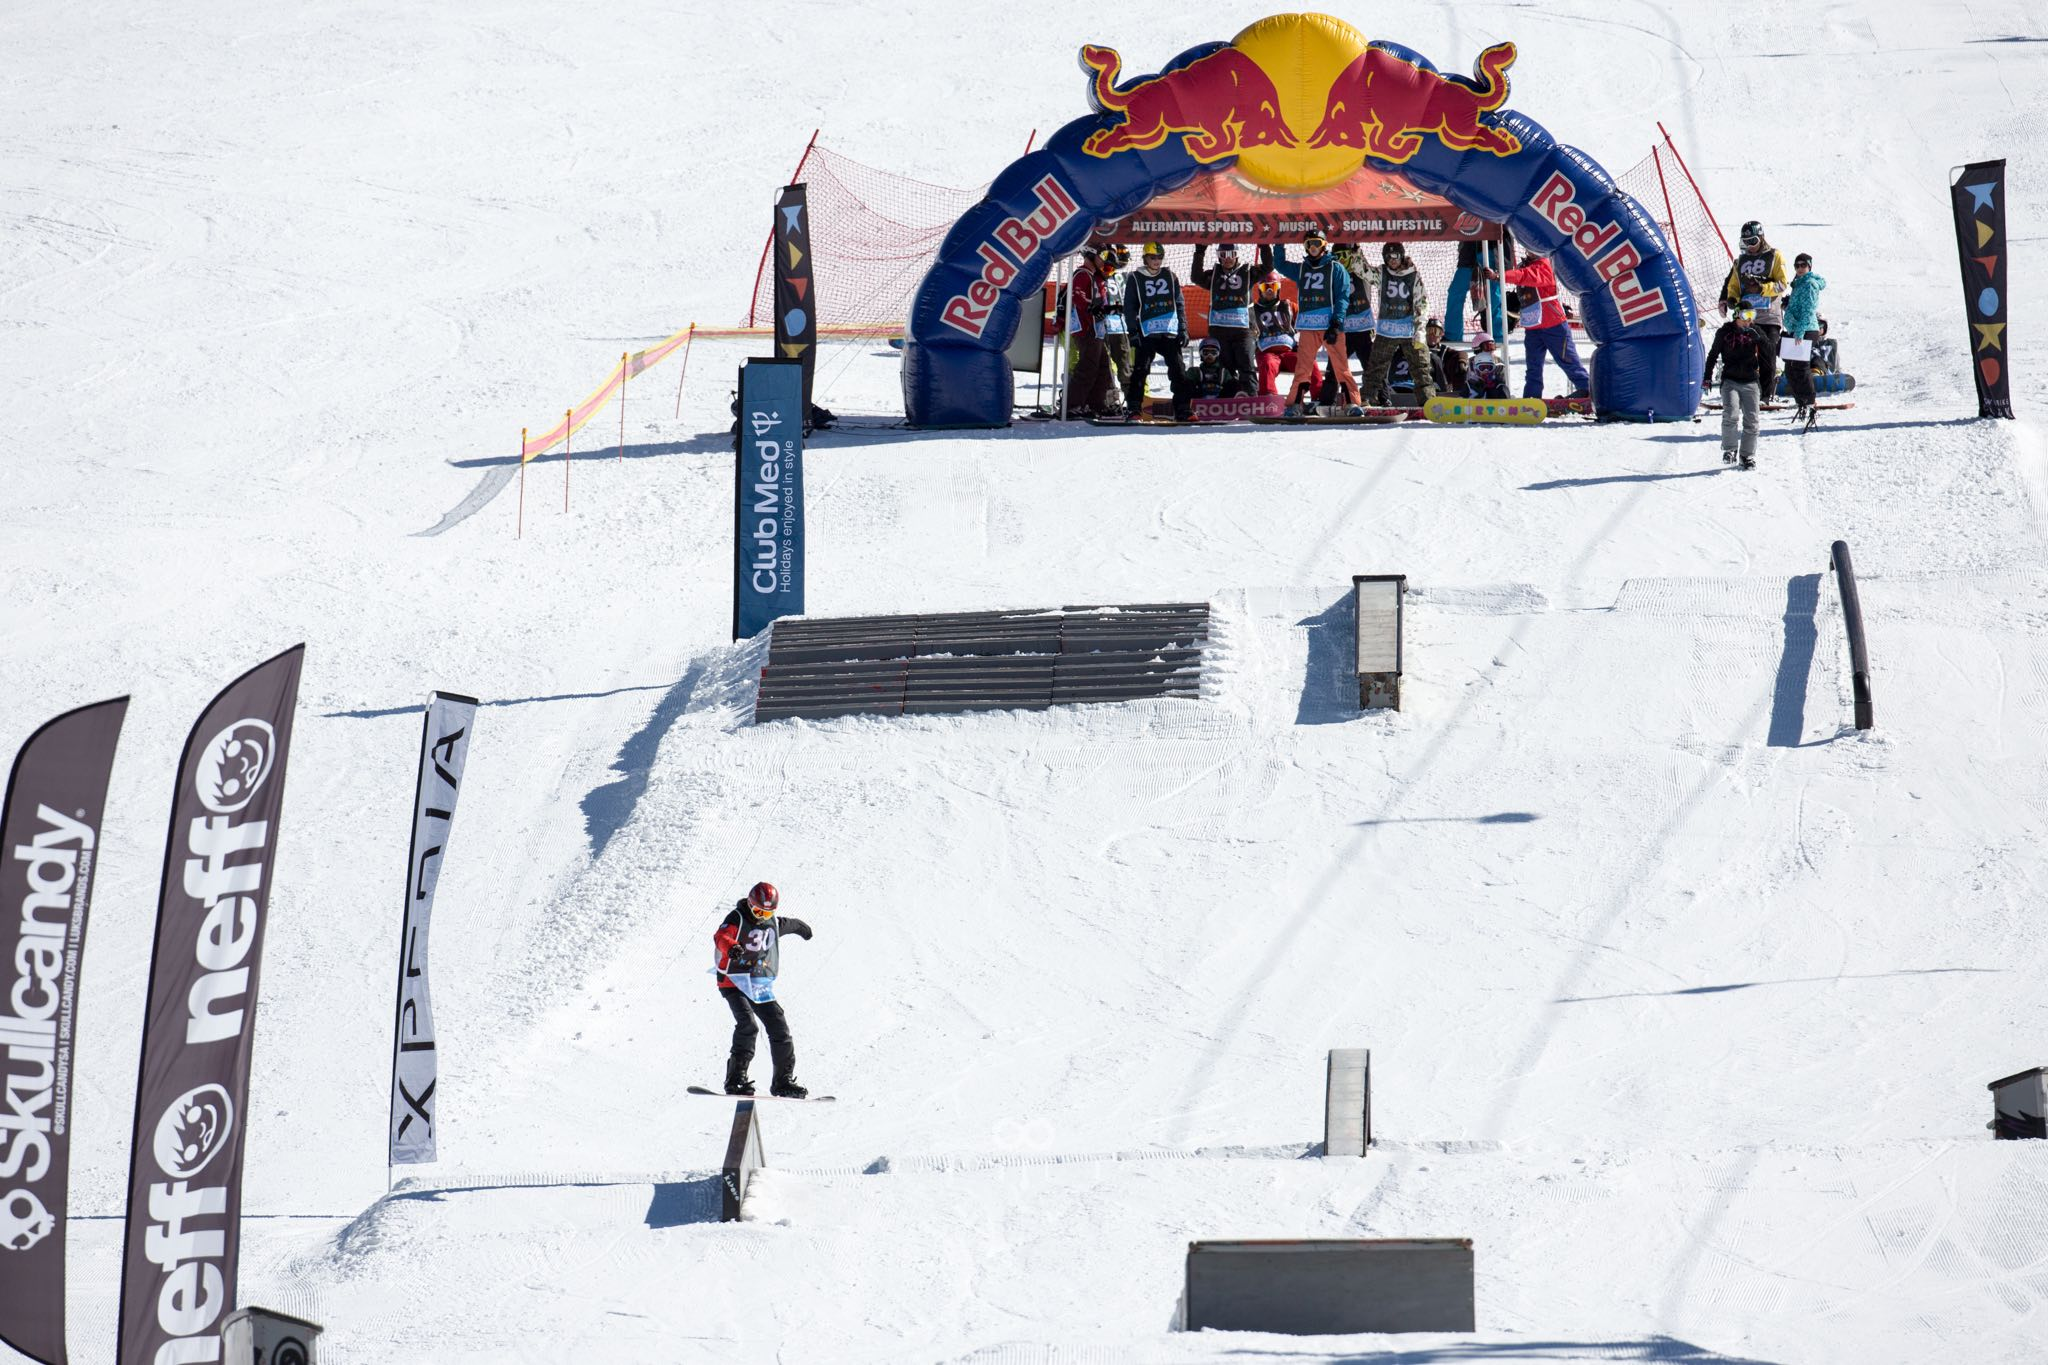 Snowboarders competing in the 2016 Xperia Winter Whip